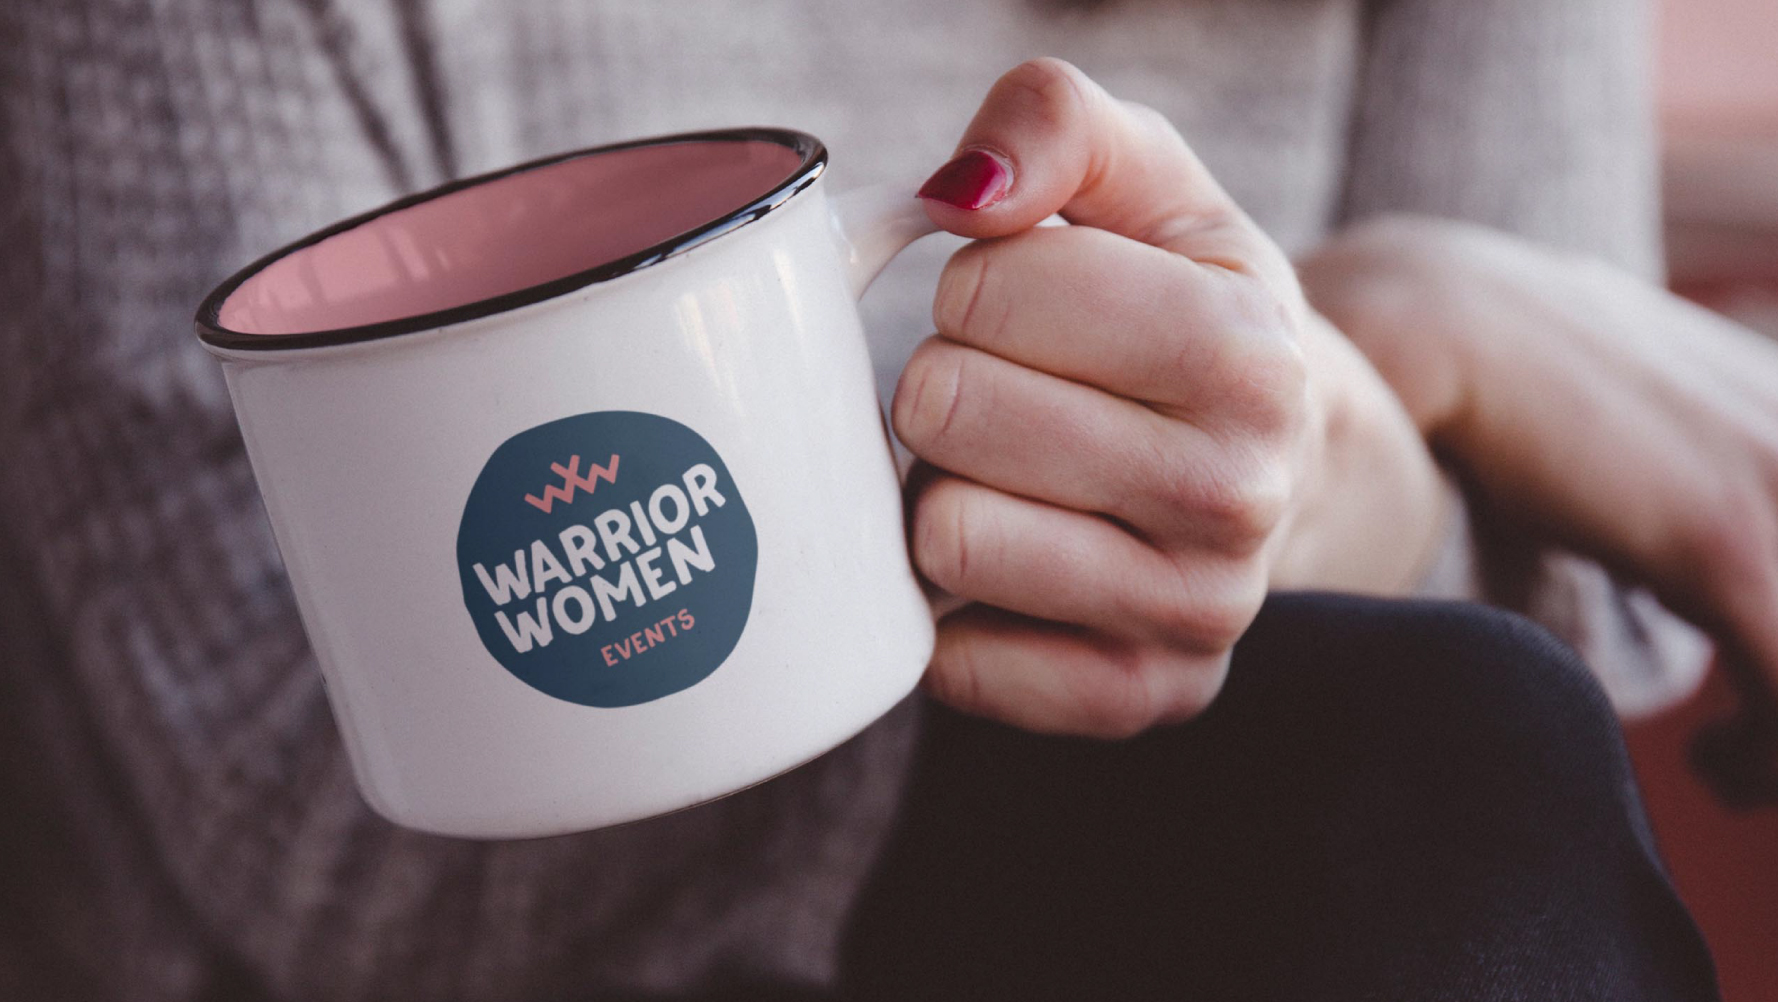 Warrior Women - Mug